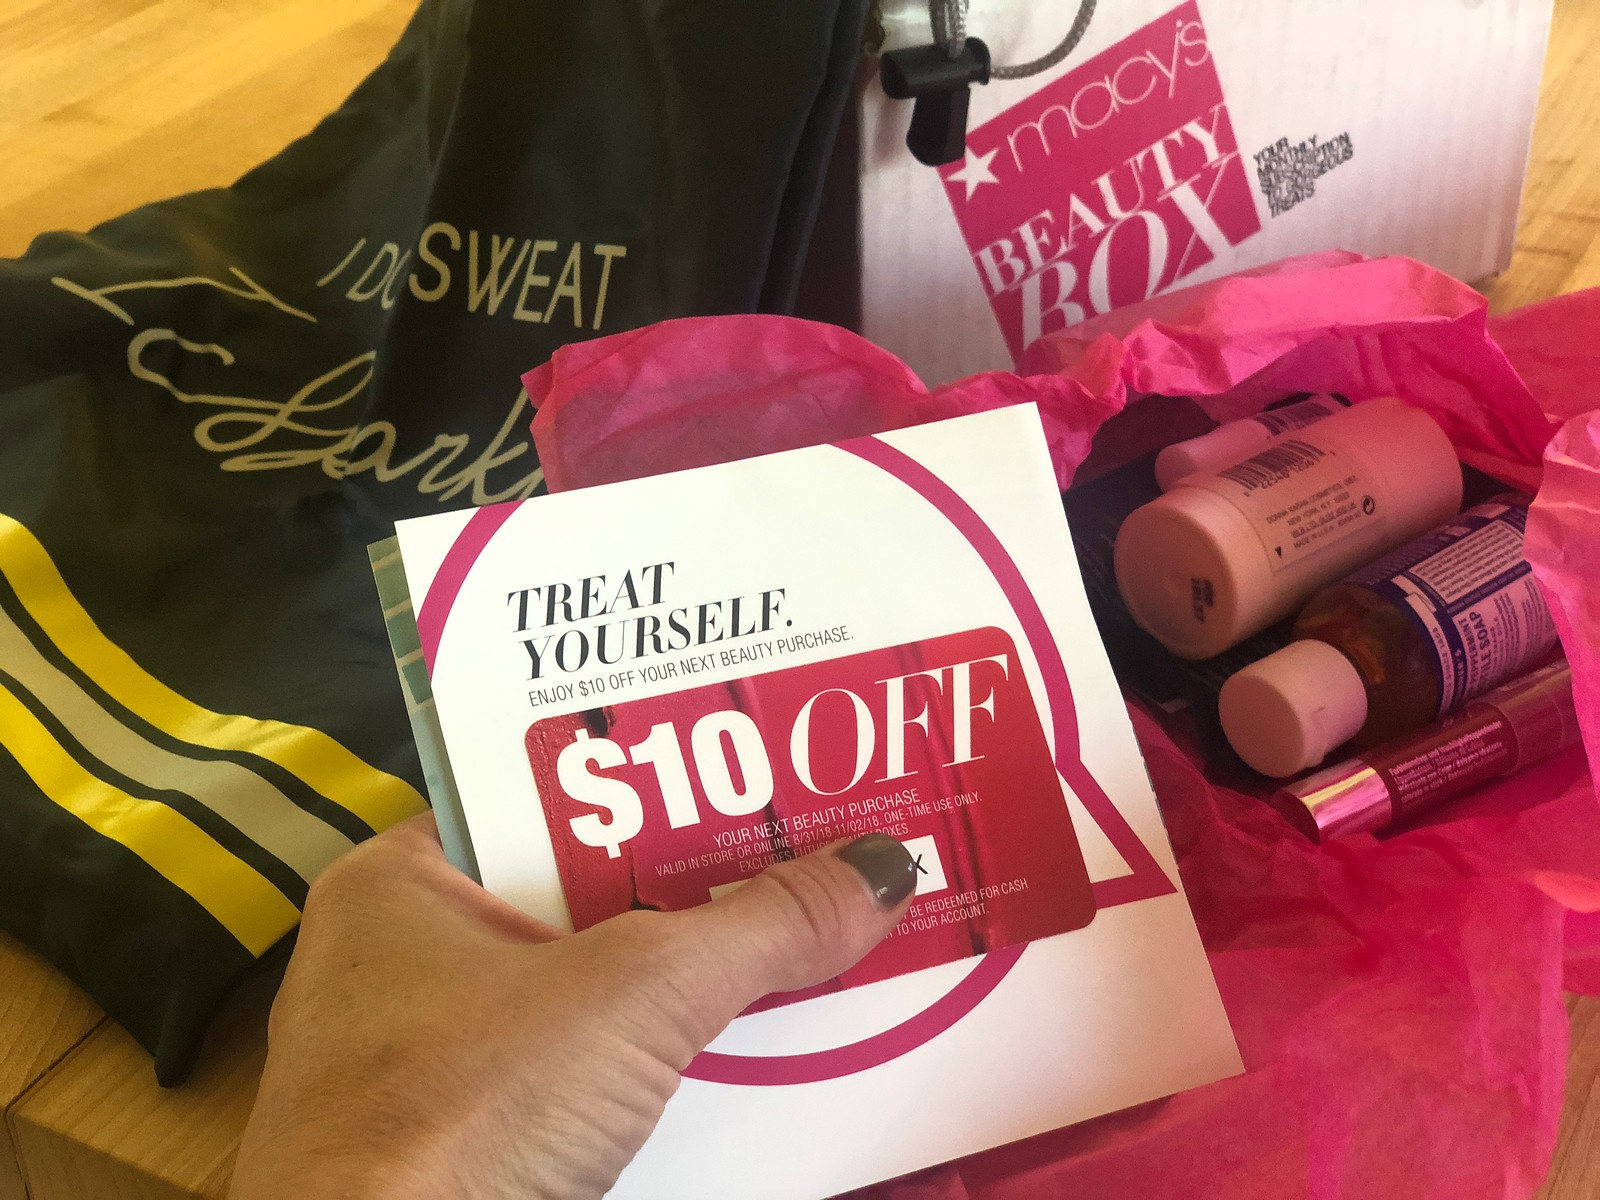 Keto snacks, activewear, and beauty samples deals! Macy's Coupon